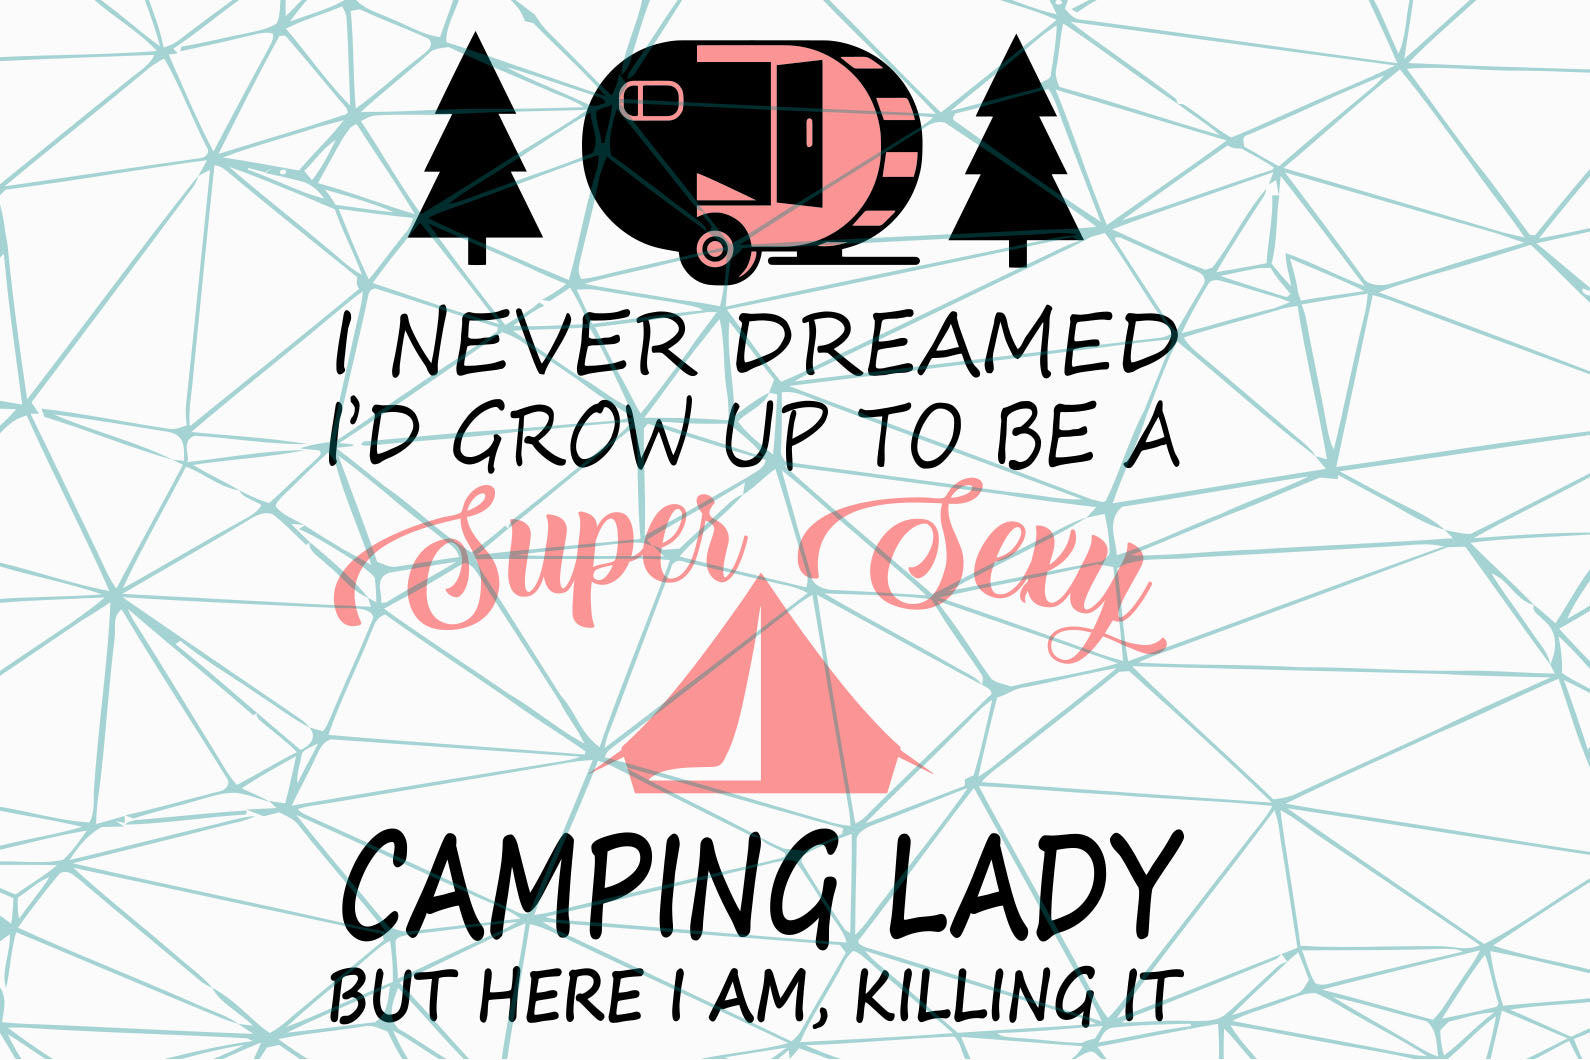 I never dreamed I had grow up to be a super sexy svg,camping lady gift,amping svg,camper svg,explore svg,travel svg,travel quotes svg,adventure svg,collect moments,inspiration svg,family svg,memories svg